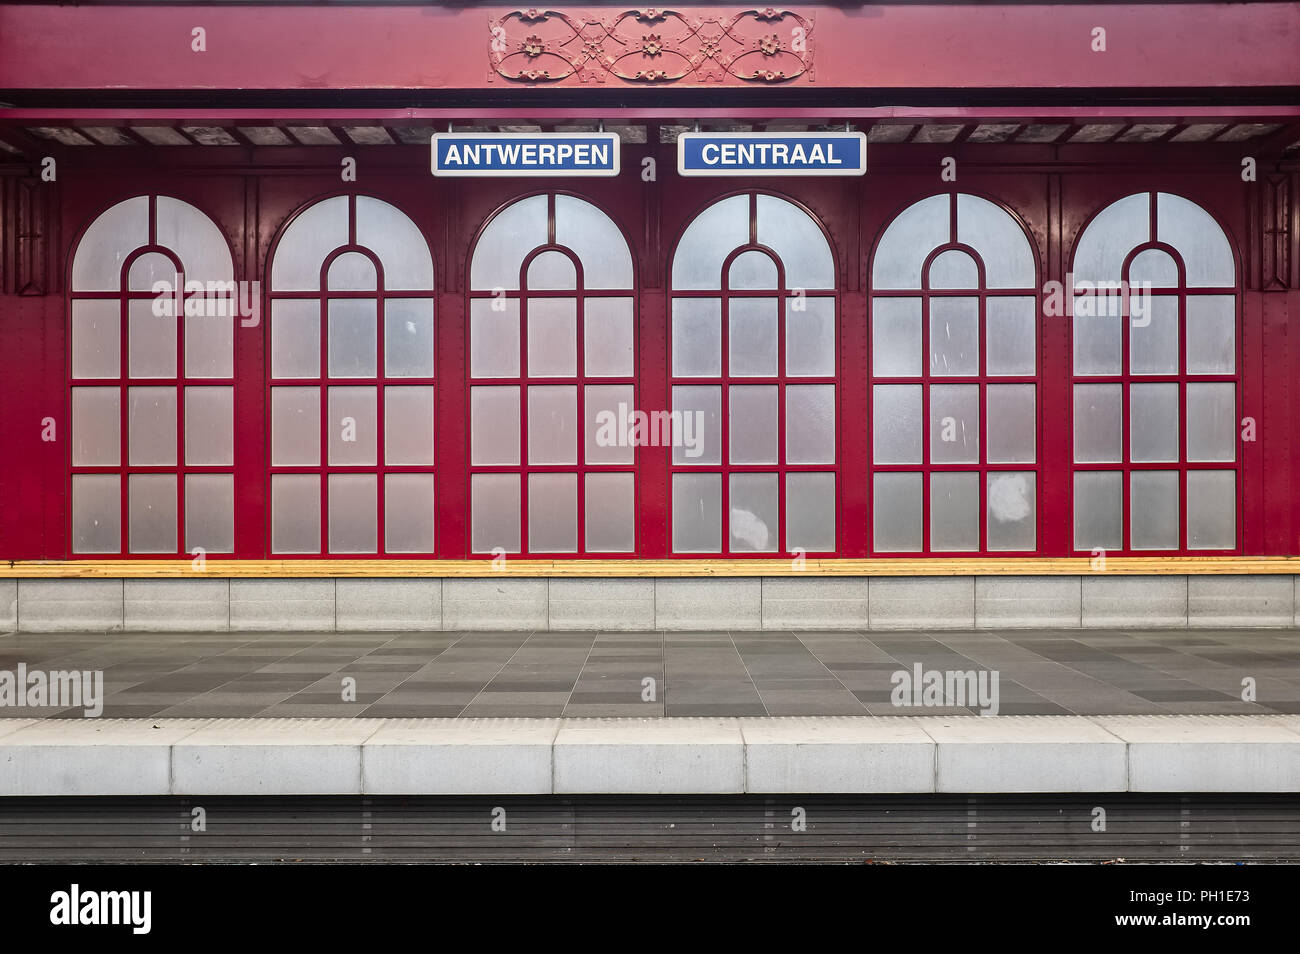 Image Of Antwerpen Centraal Name Sign Against Red Iron Background Inside The Antwerp Central Station Sunday 13 December 2015 Antwerp Belgium Stock Photo Alamy